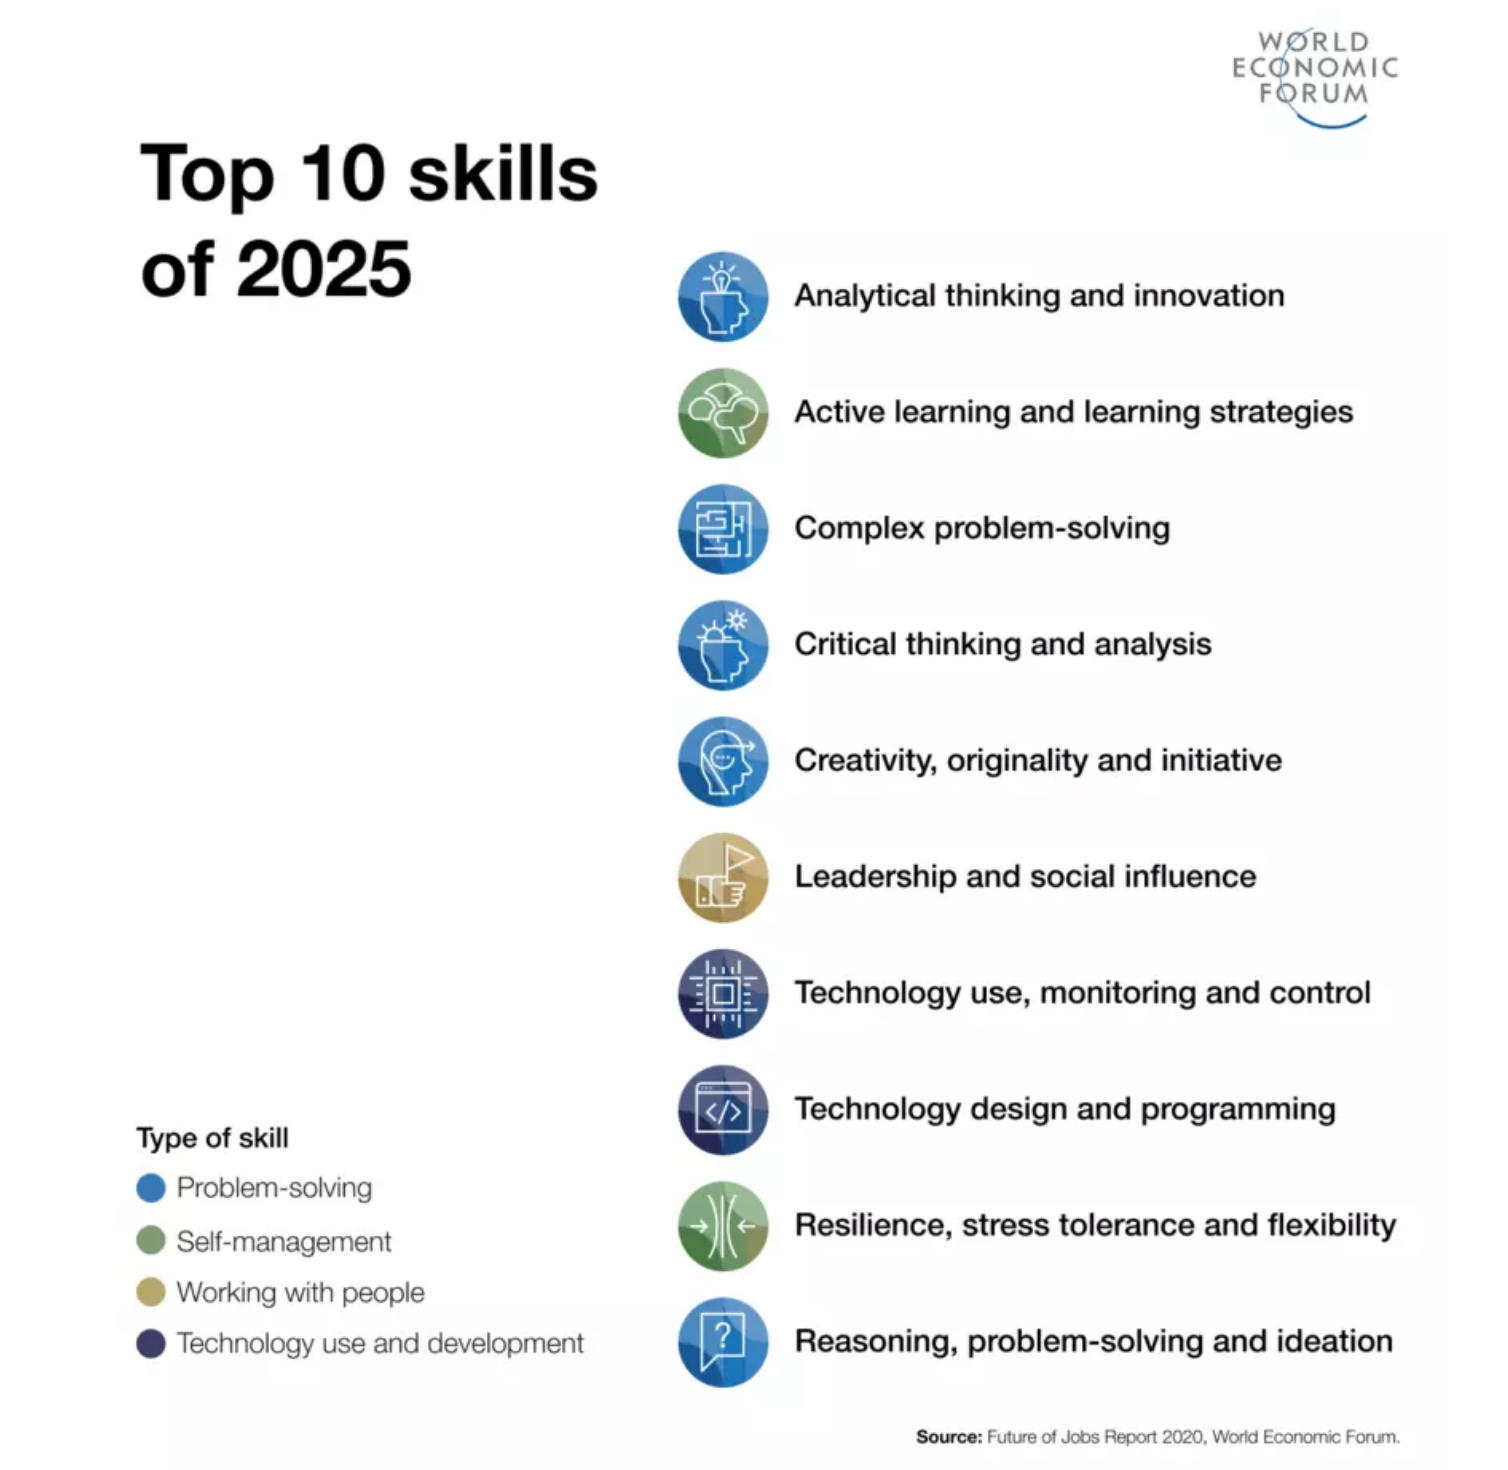 The top 10 skills of 2025